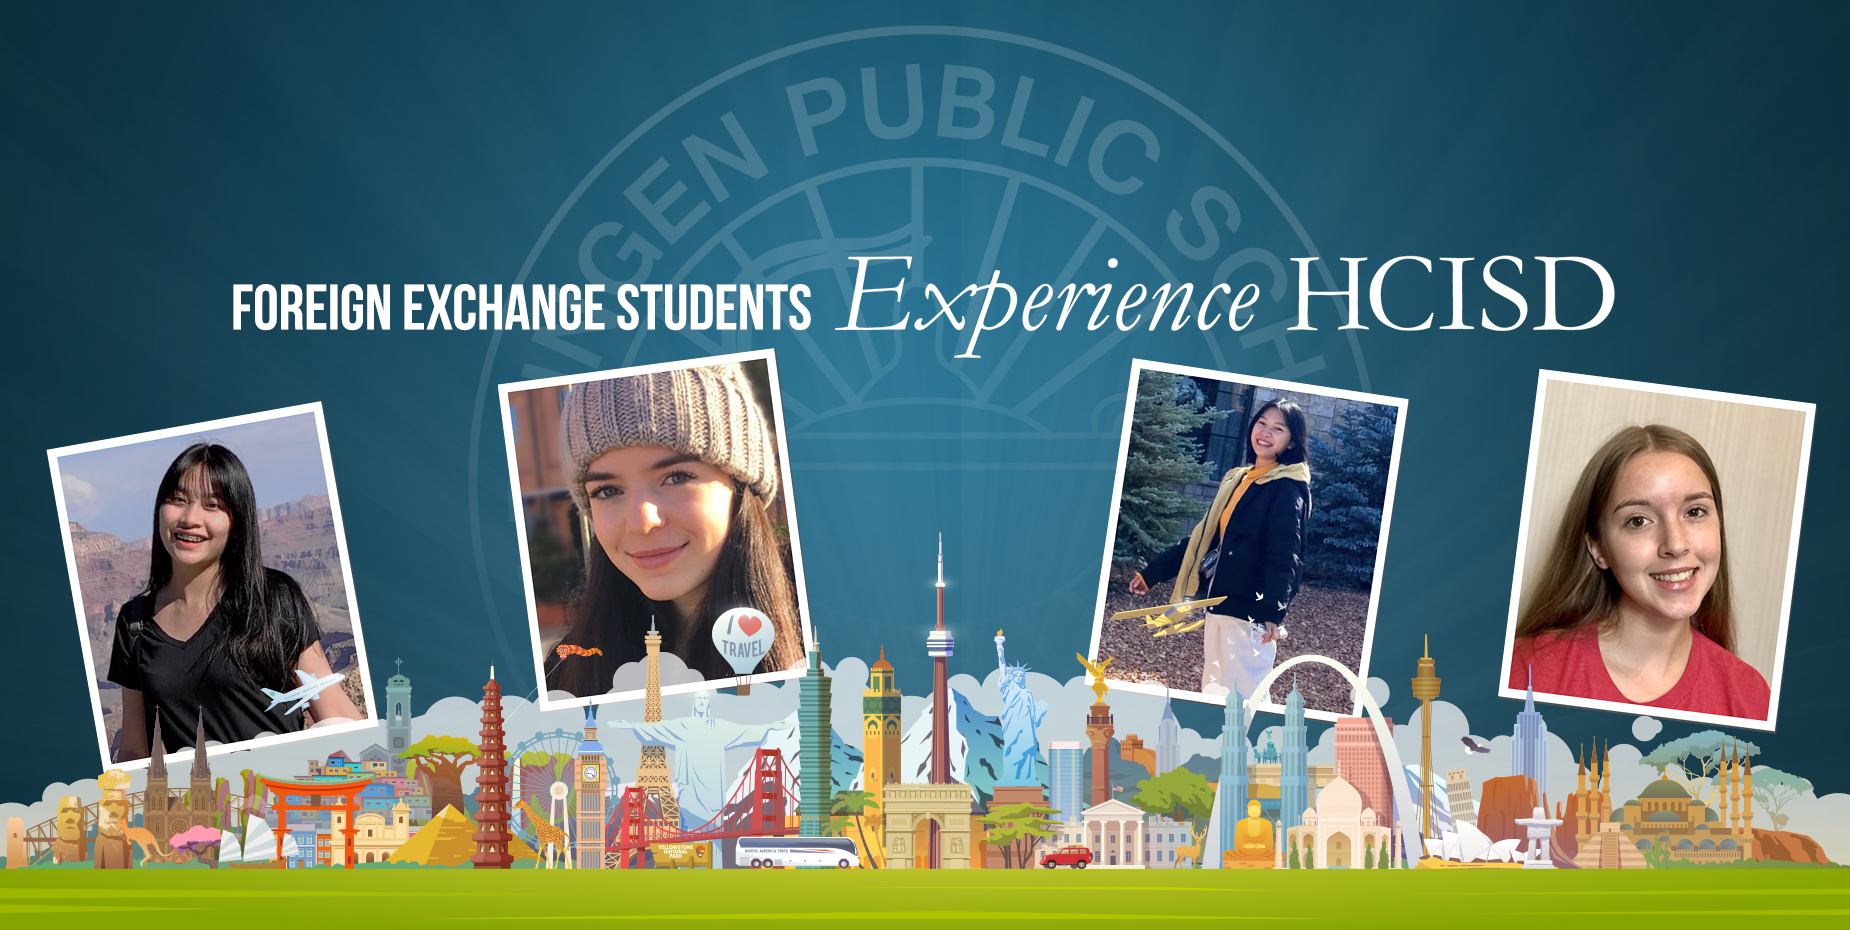 Foreign exchange students experience HCISD